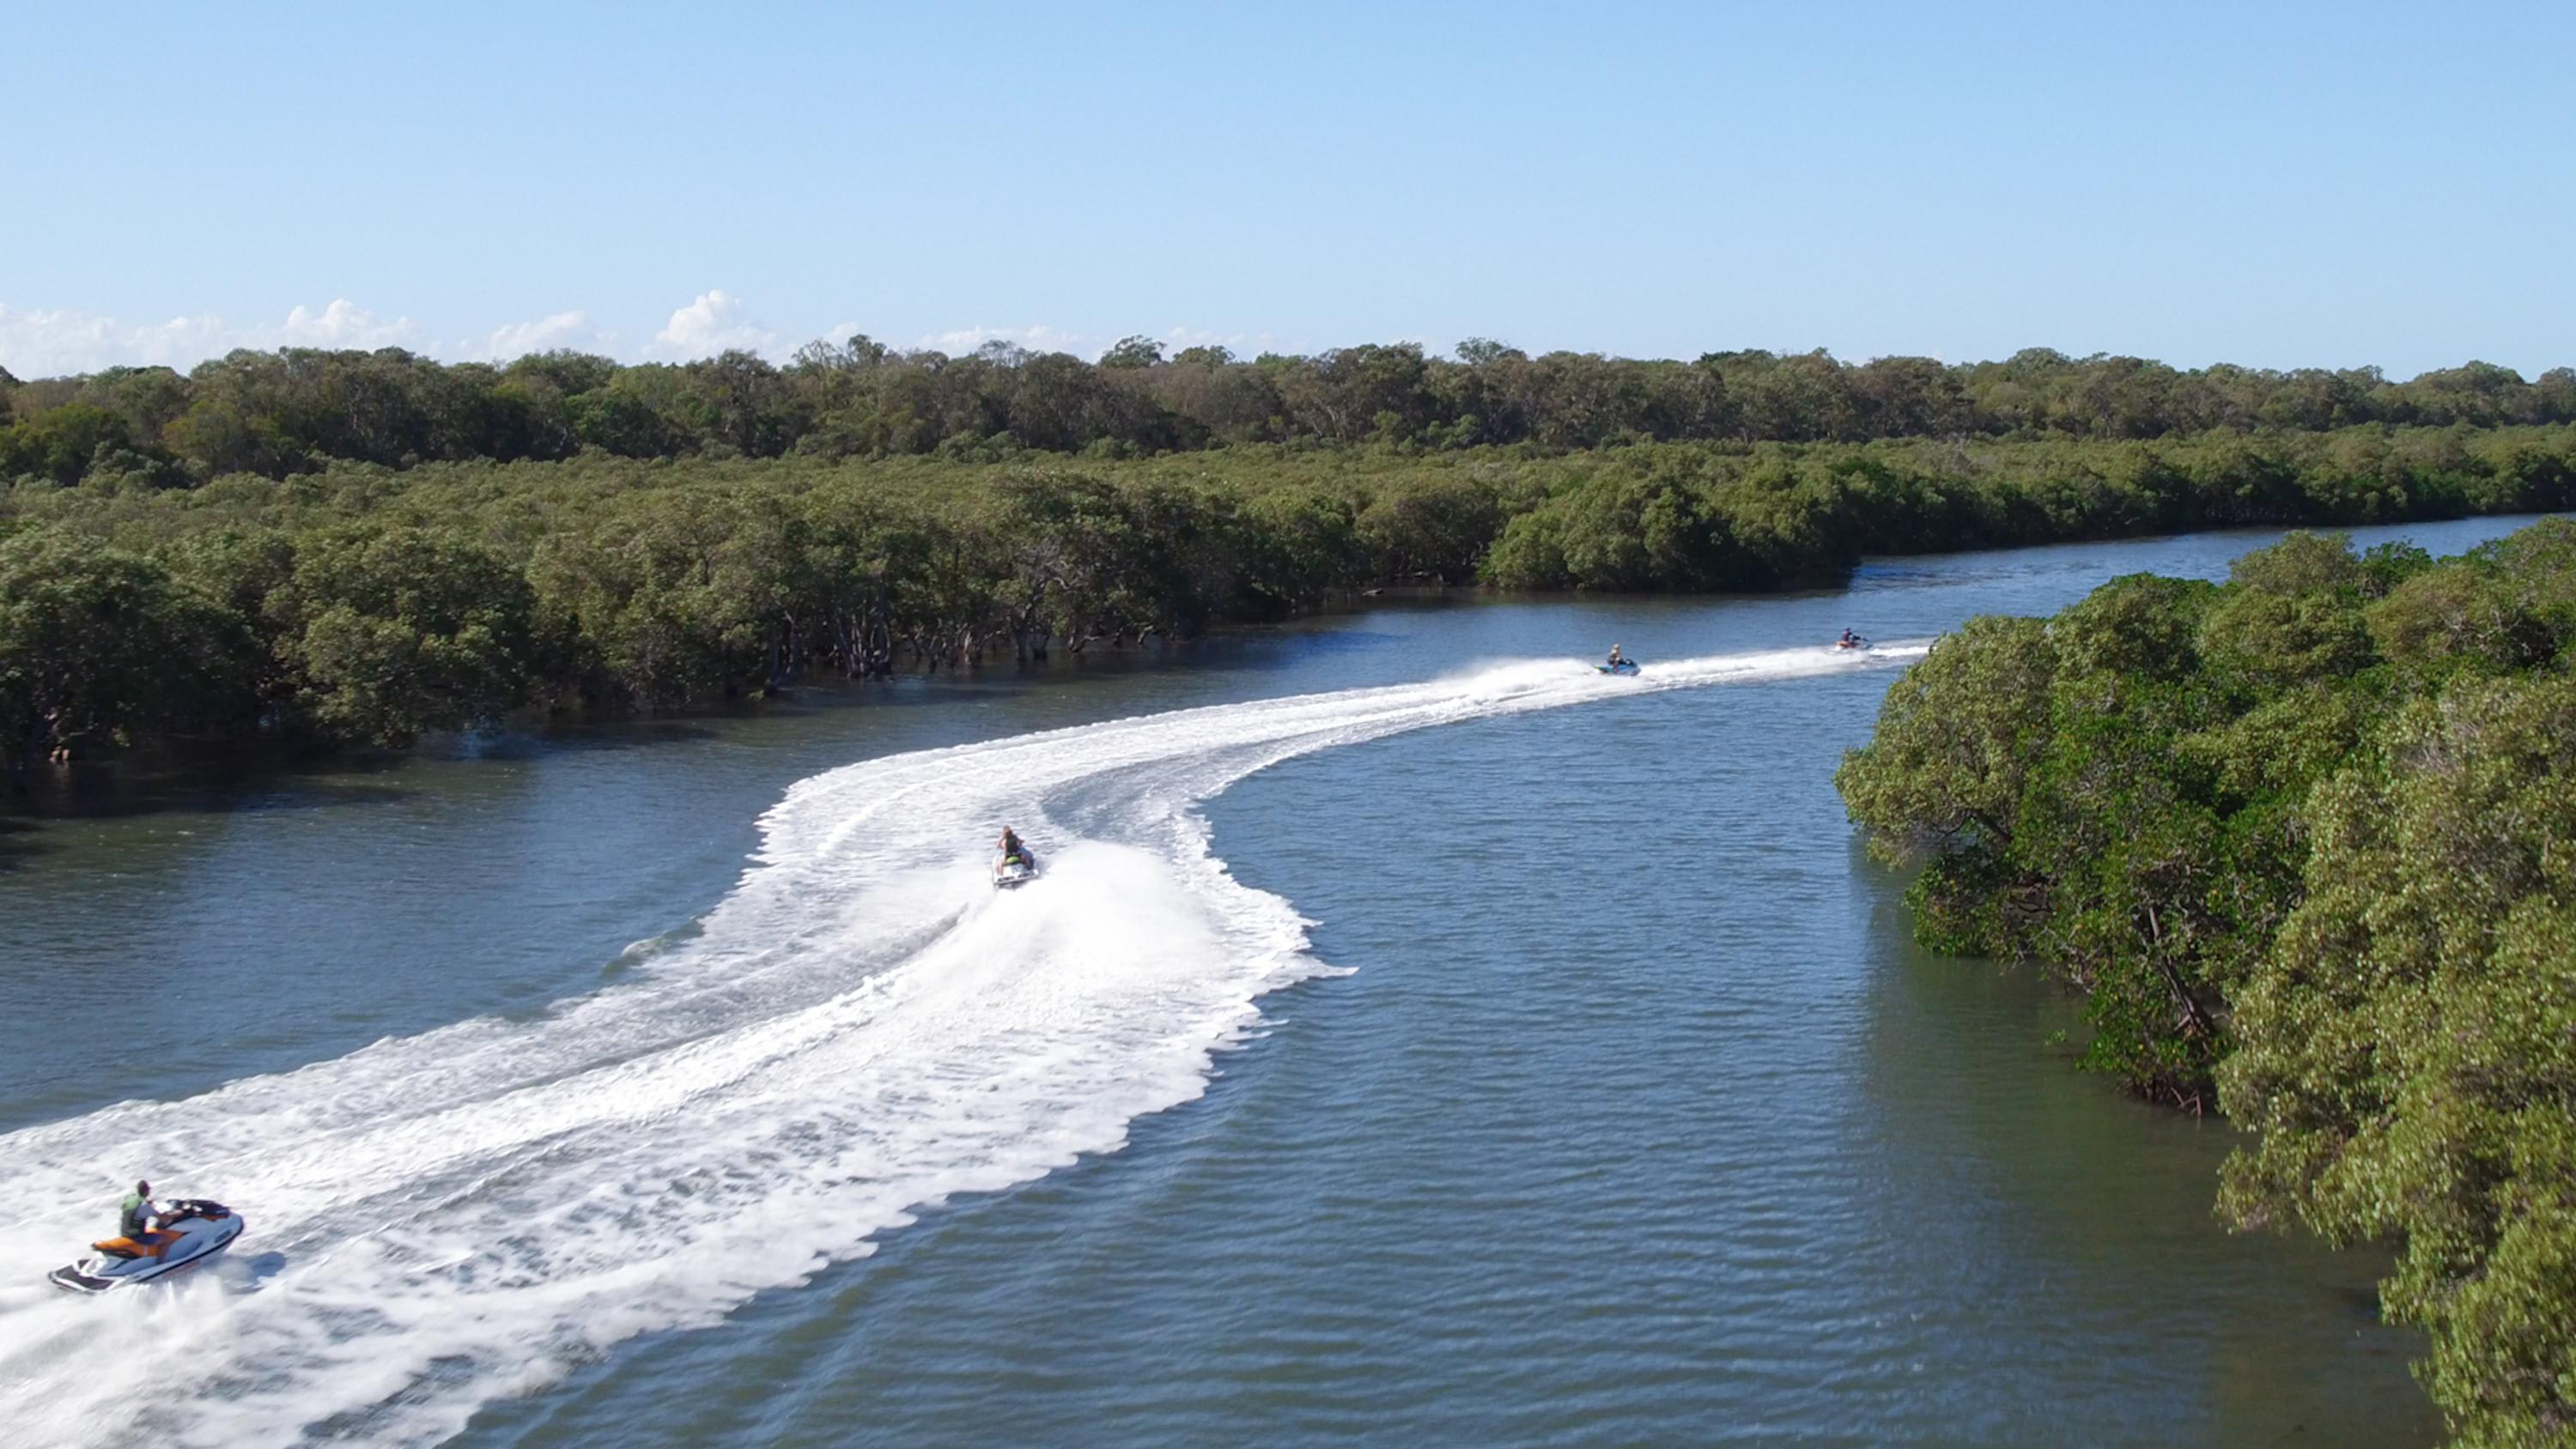 Ultimate Jet Ski Safari With a Passenger, Gold Coast - 2.5 Hours